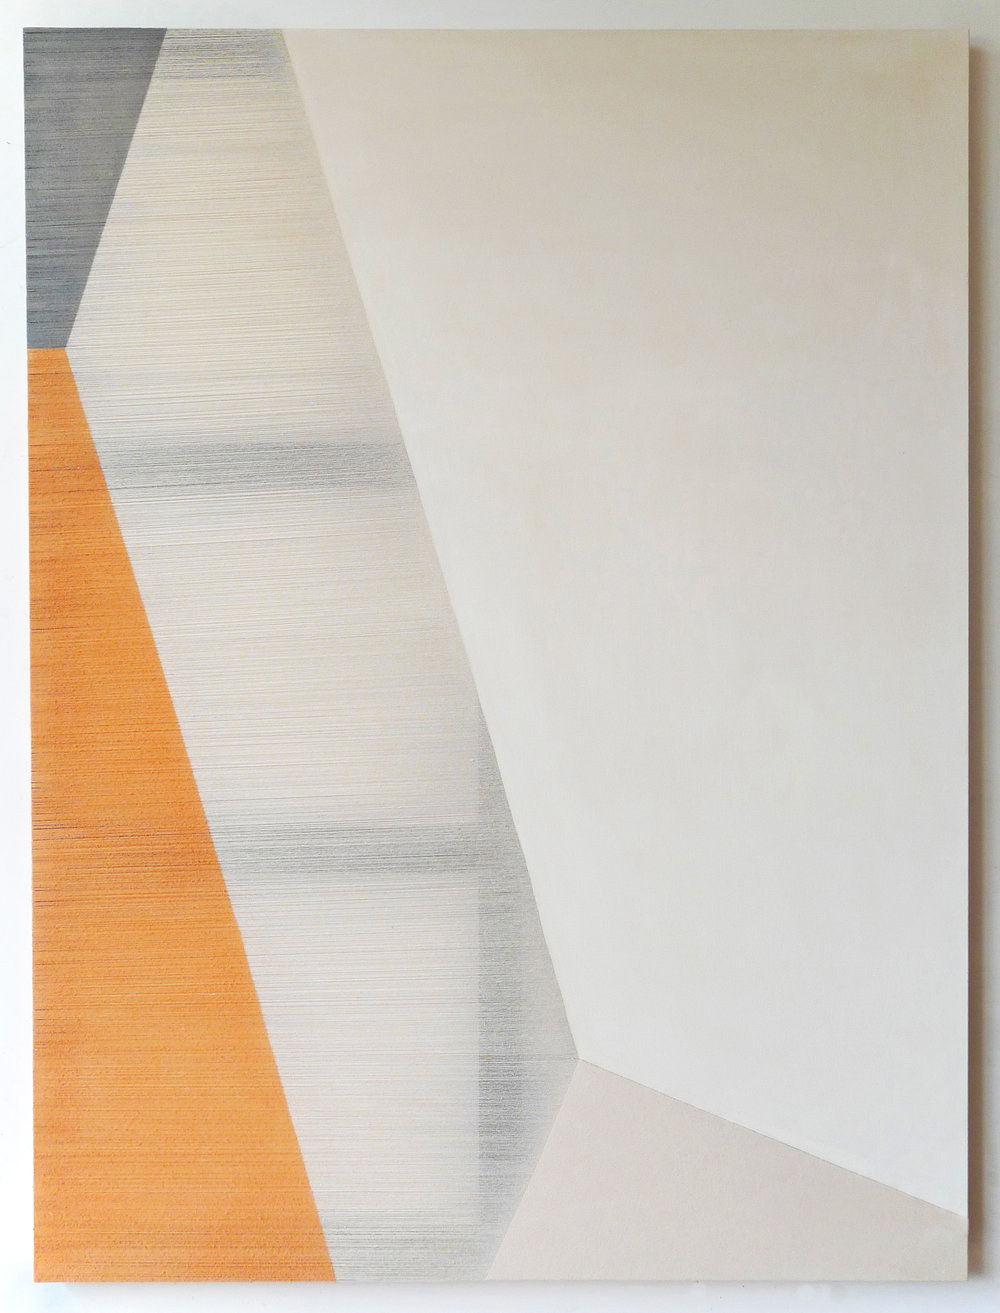 myth  2014 acrylic on stitched canvas 72 in x 54 in